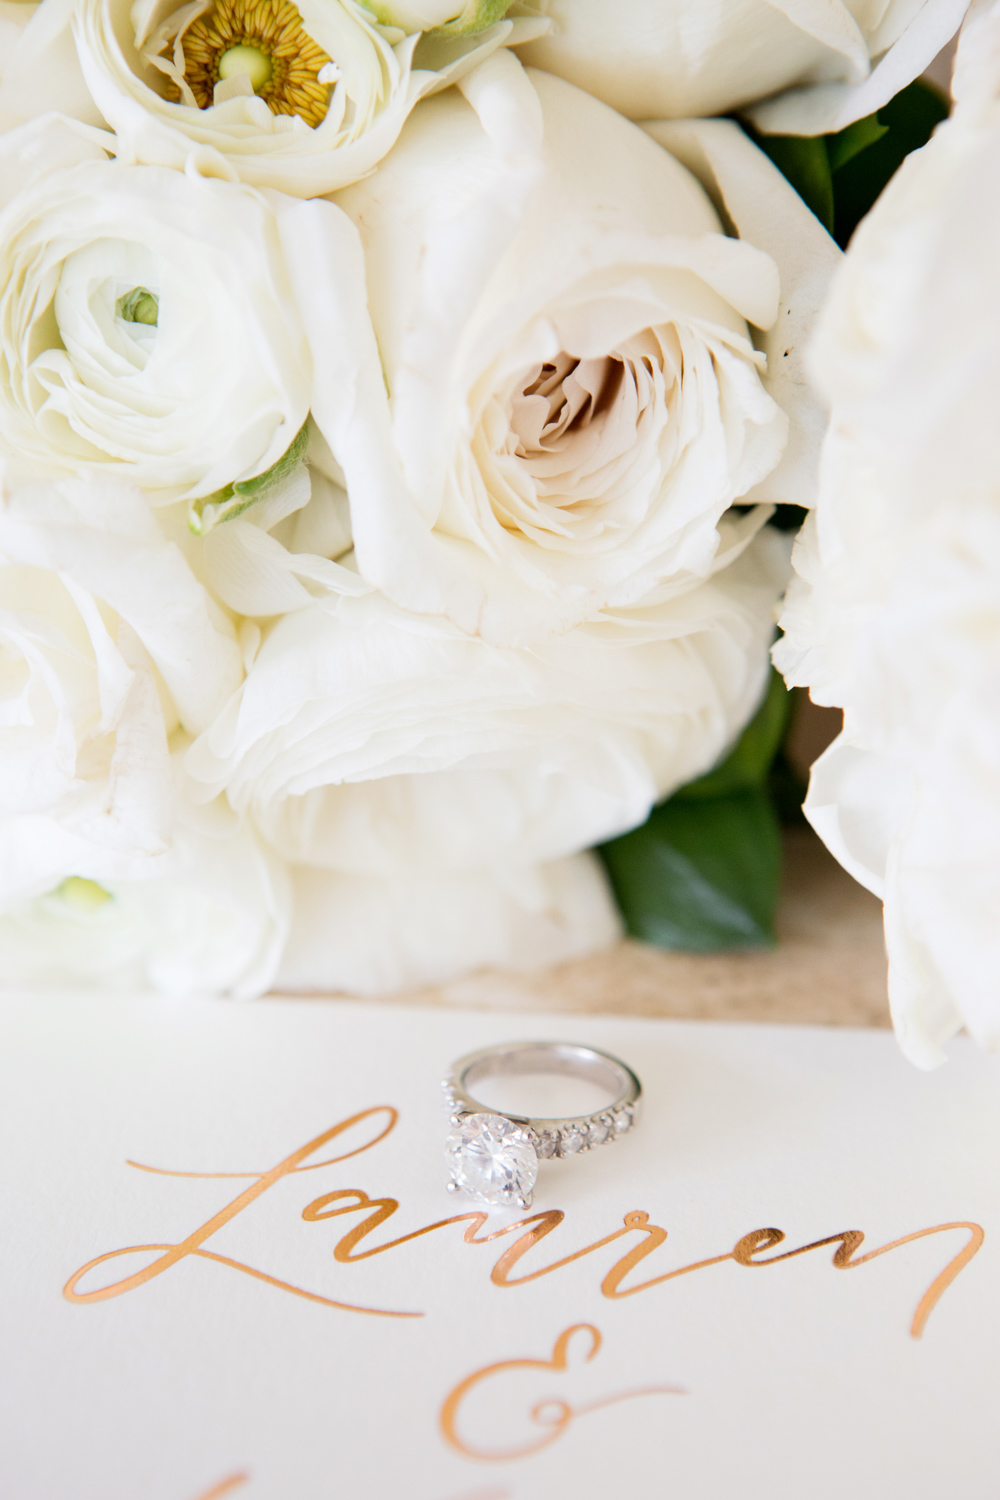 wedding-0104-rings-engagement-invitation-flowers-bouquet-queensland.jpg